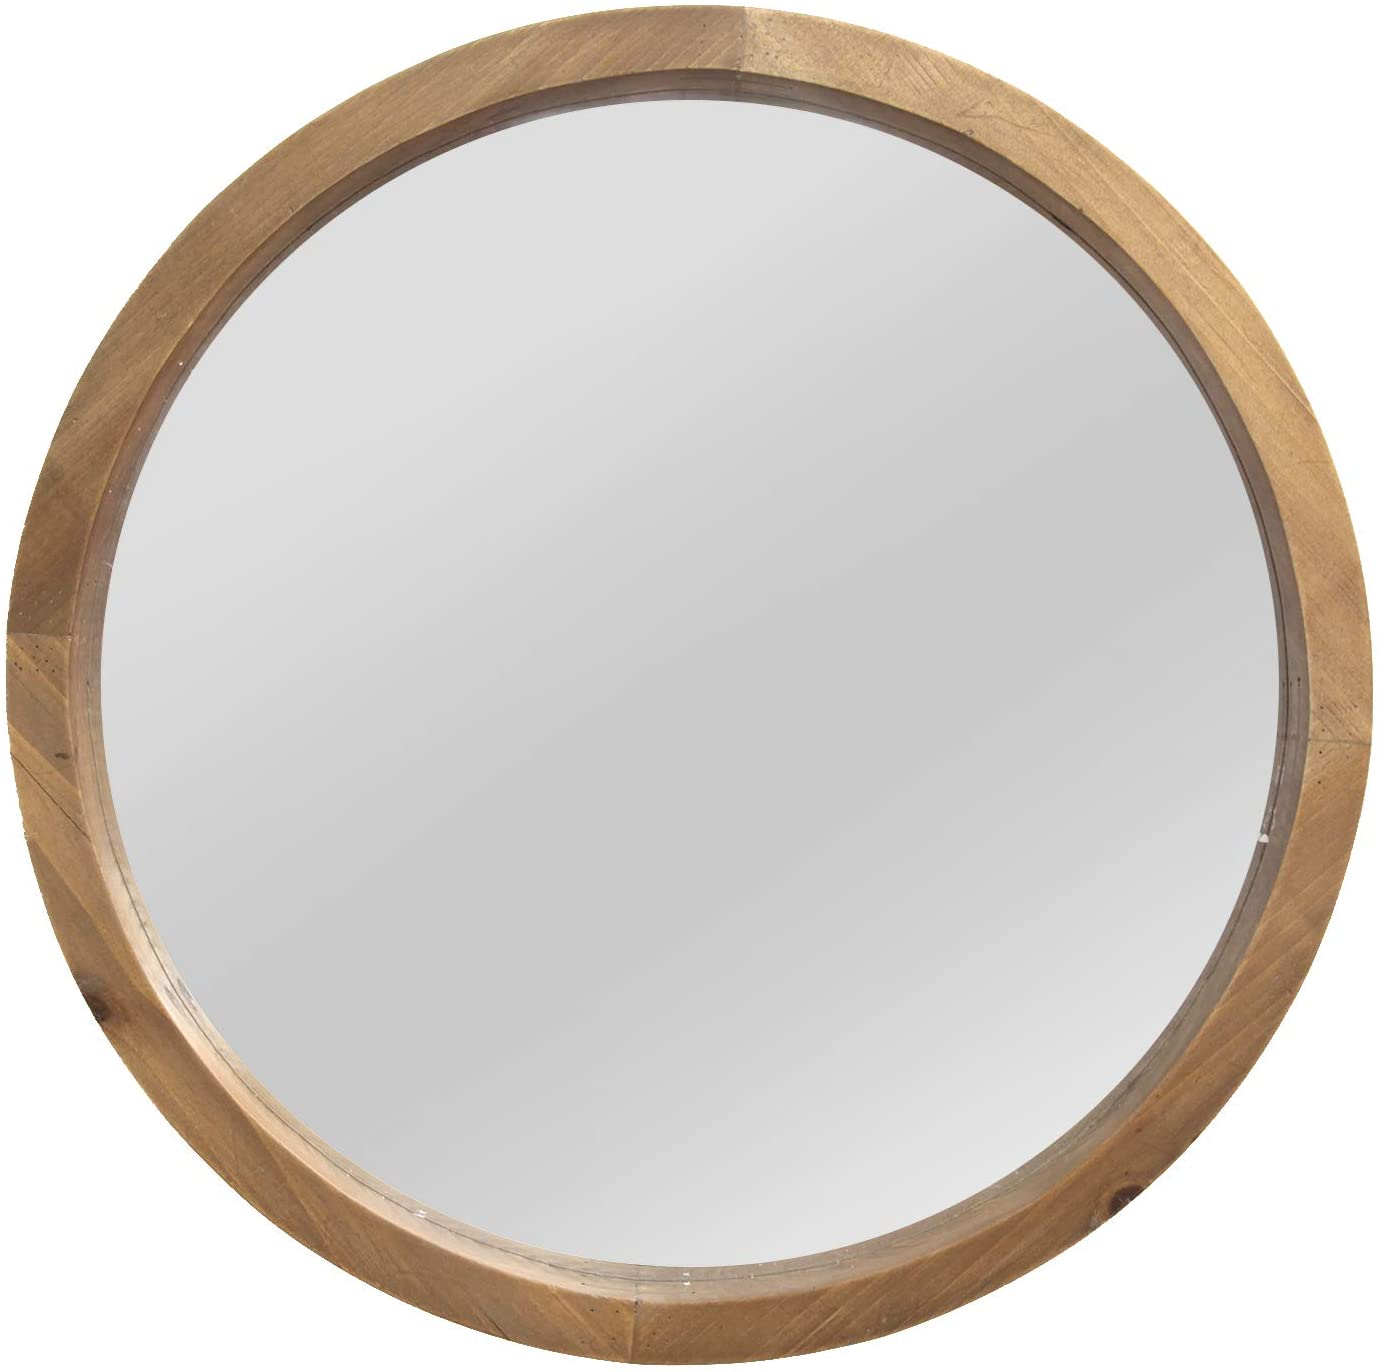 Stratton Home Decor Maddie Wood Mirror, Light Natural Wood, 20.00 W X 2.25 D X 20.00 H (S13562)